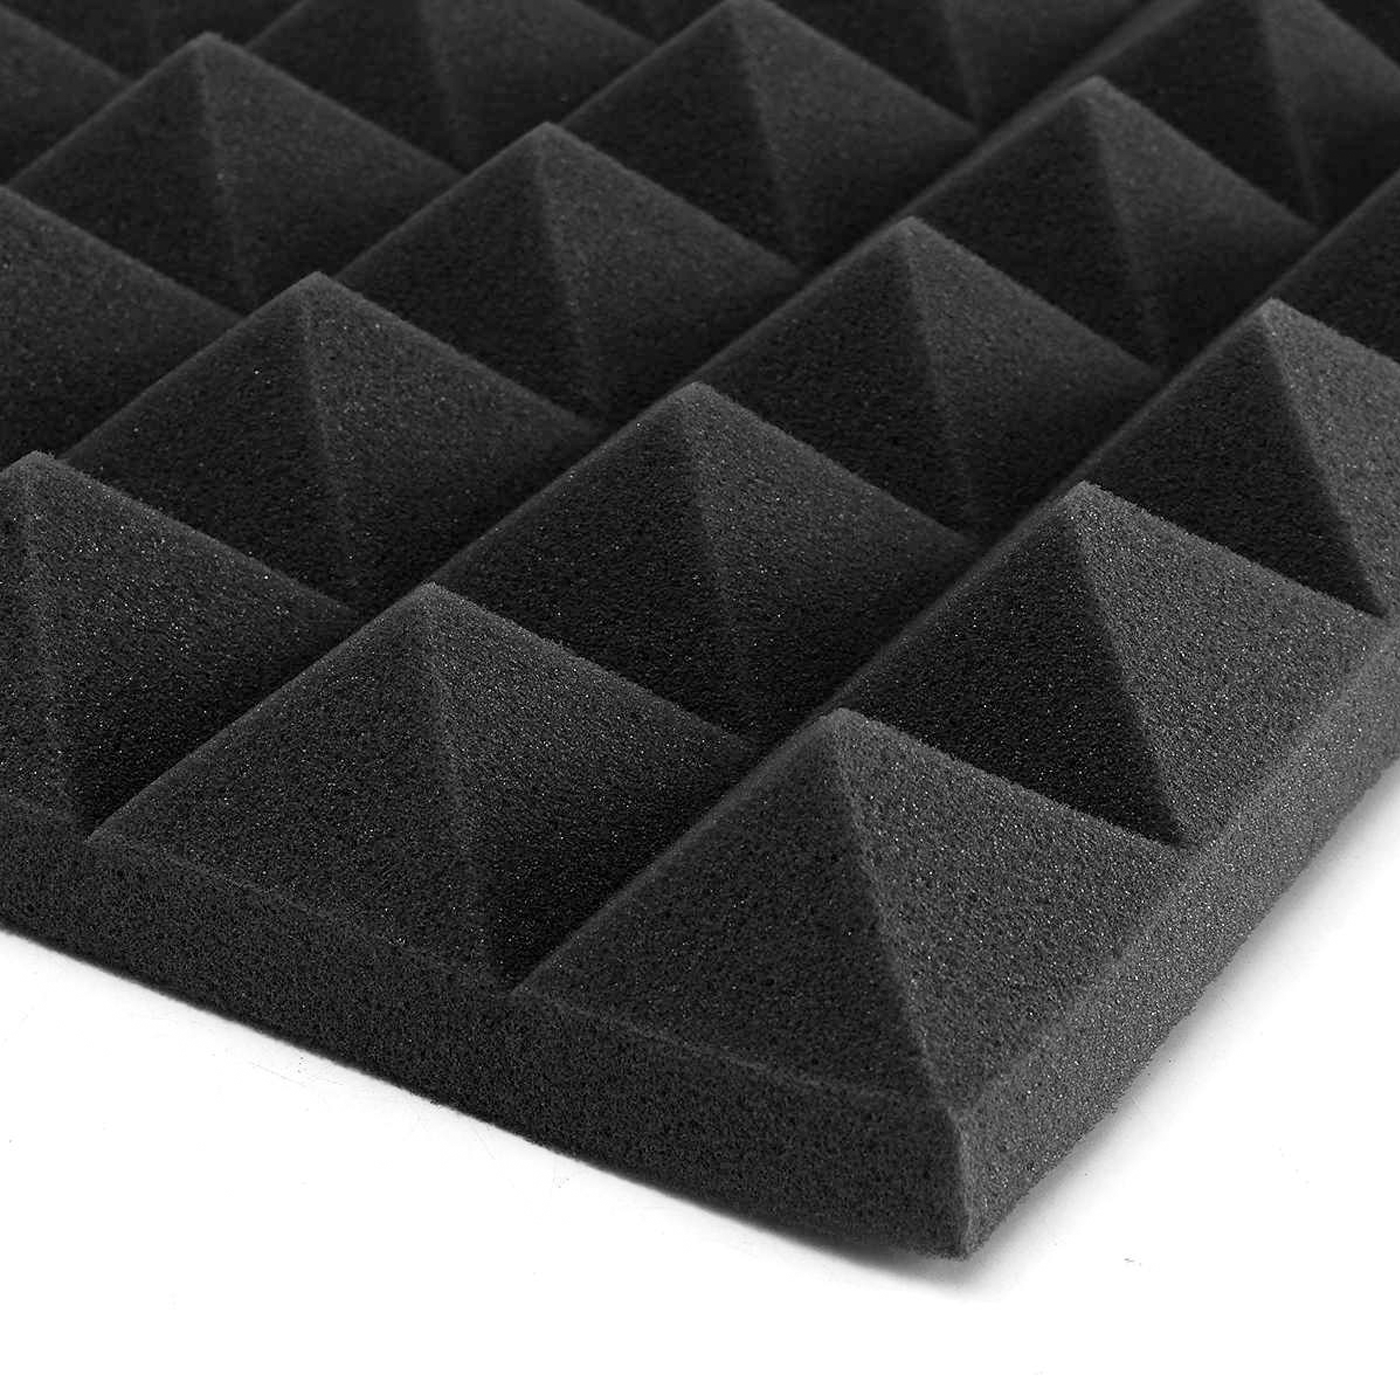 Acoustic Foam Panels - Pyramid - 2 Inches Thick (20x20) - 4 Pcs The Soundproof Store